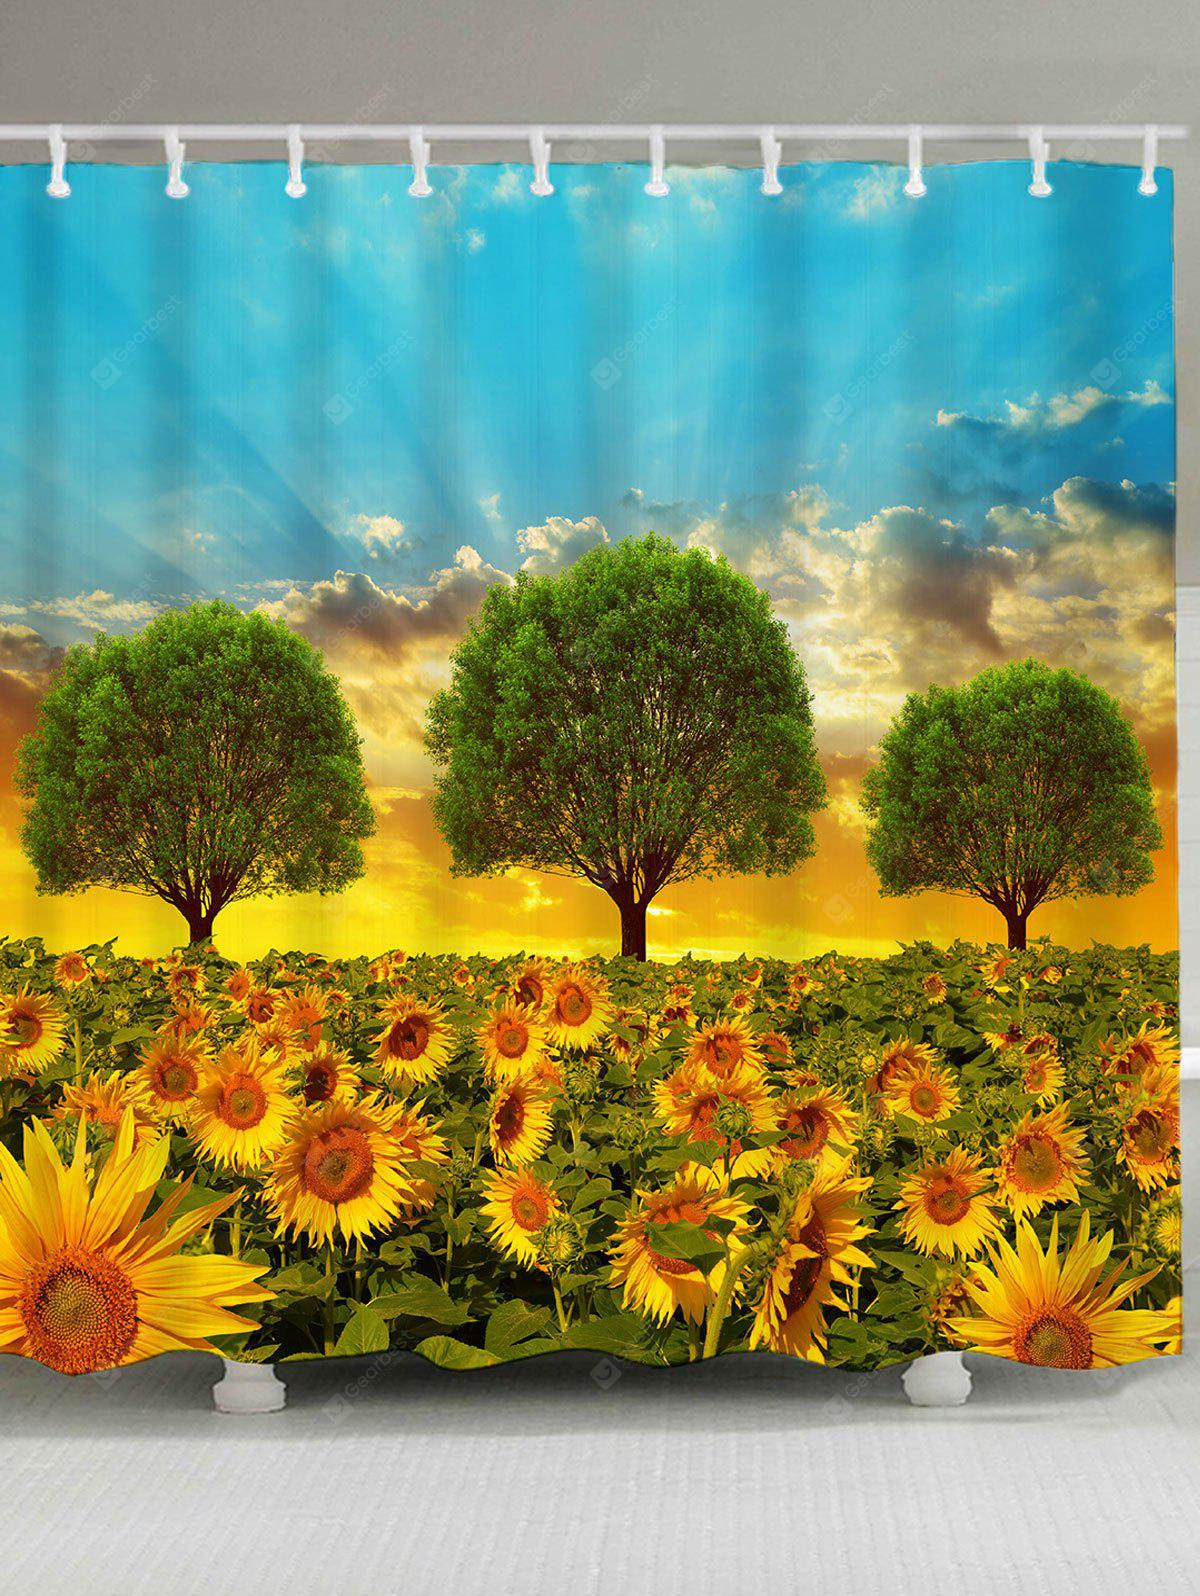 Morning Sunflowers Pattern Shower Curtain